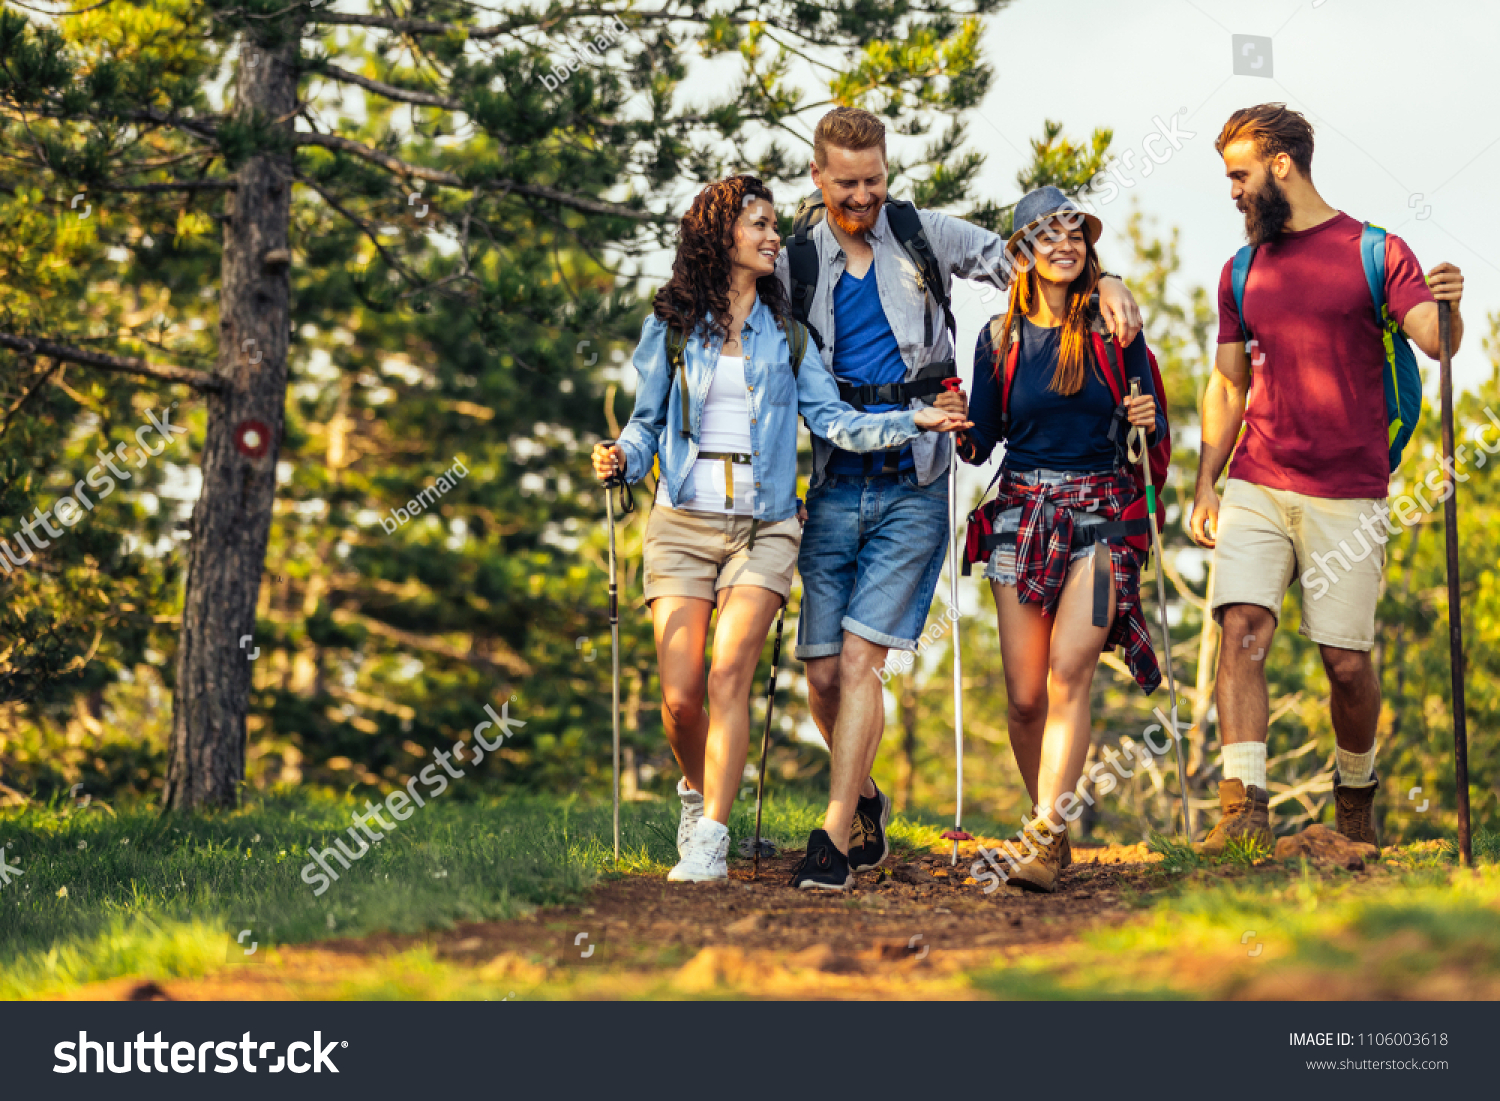 Shot of a group of friends trekking in the mountains #1106003618